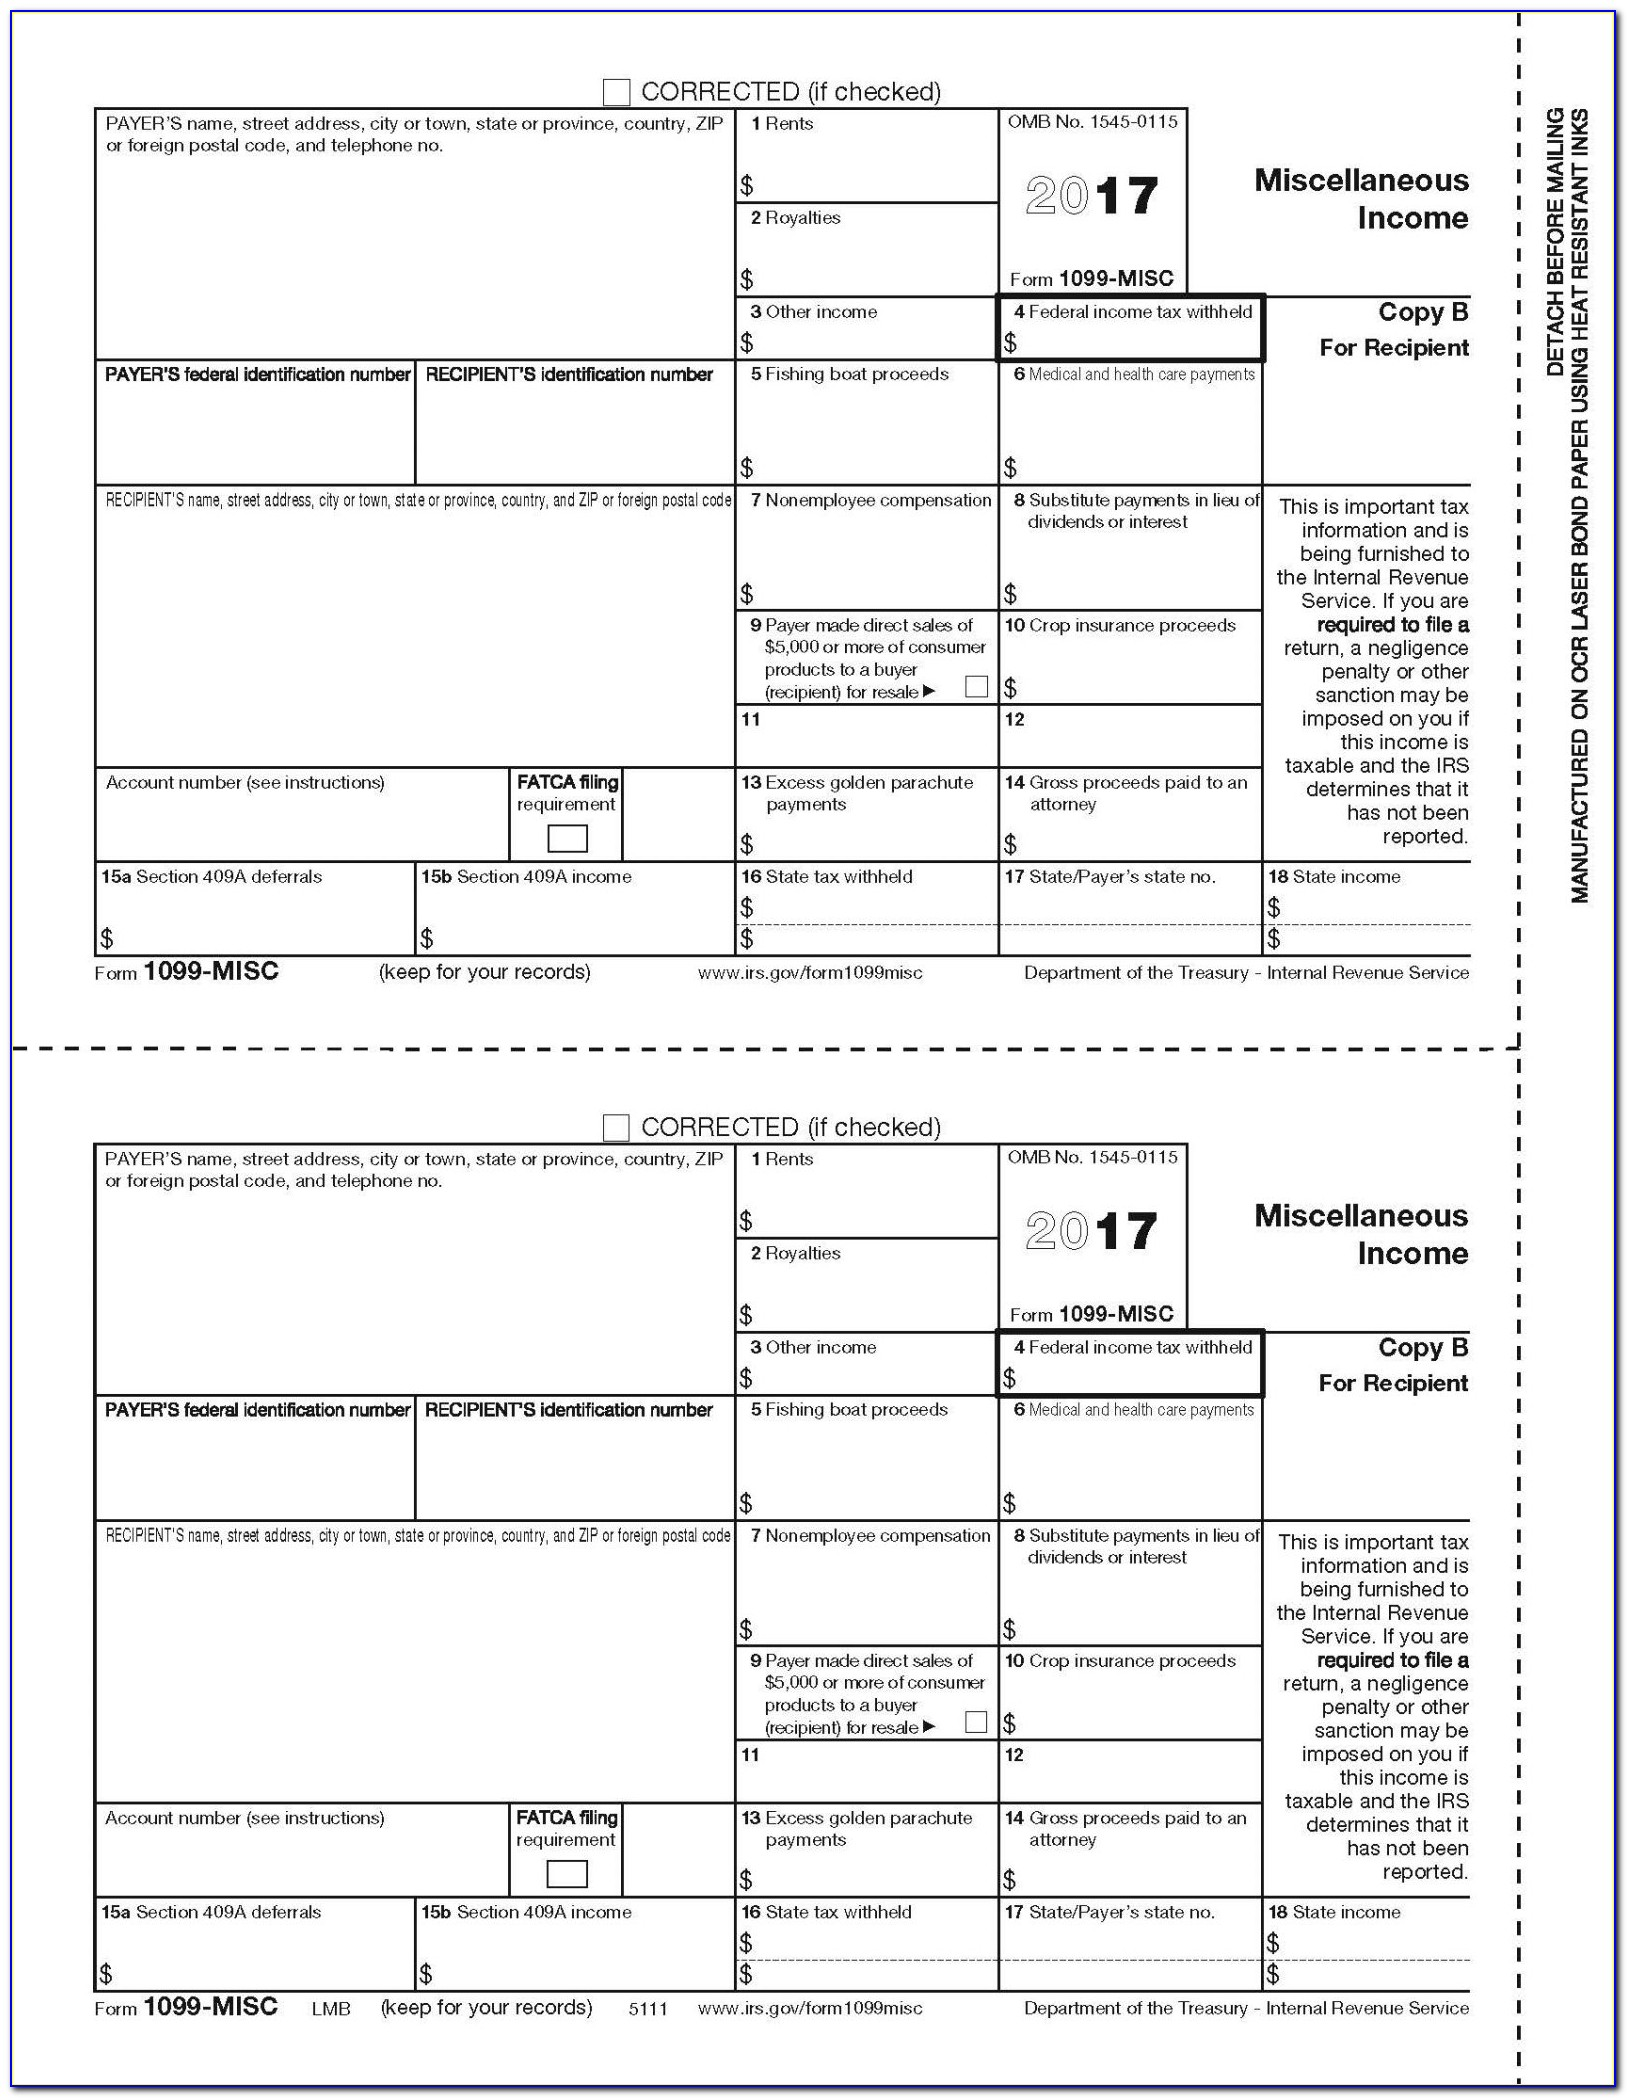 Irs 1099 Form 2014 Instructions